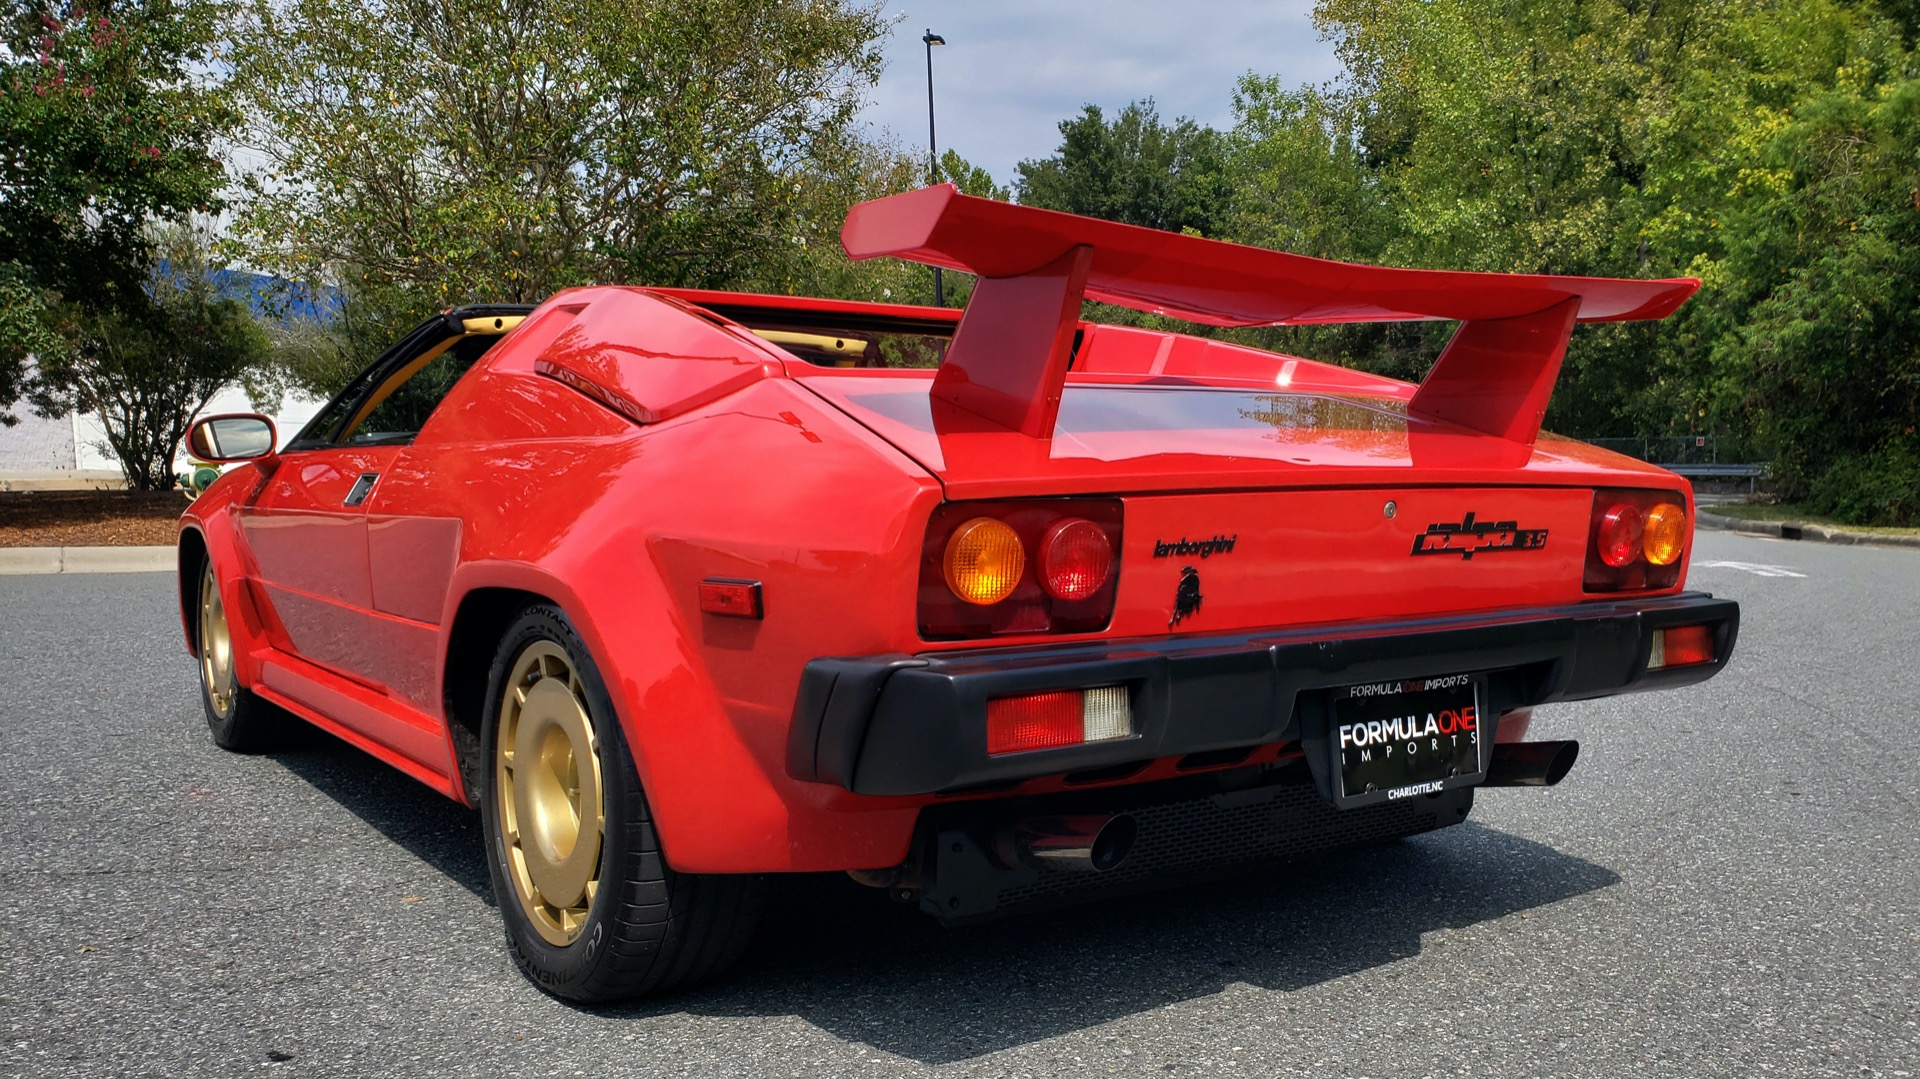 Used 1988 Lamborghini Jalpa 3.5 / 5-Speed Man / Low Miles / Excellent Condition for sale $108,995 at Formula Imports in Charlotte NC 28227 26